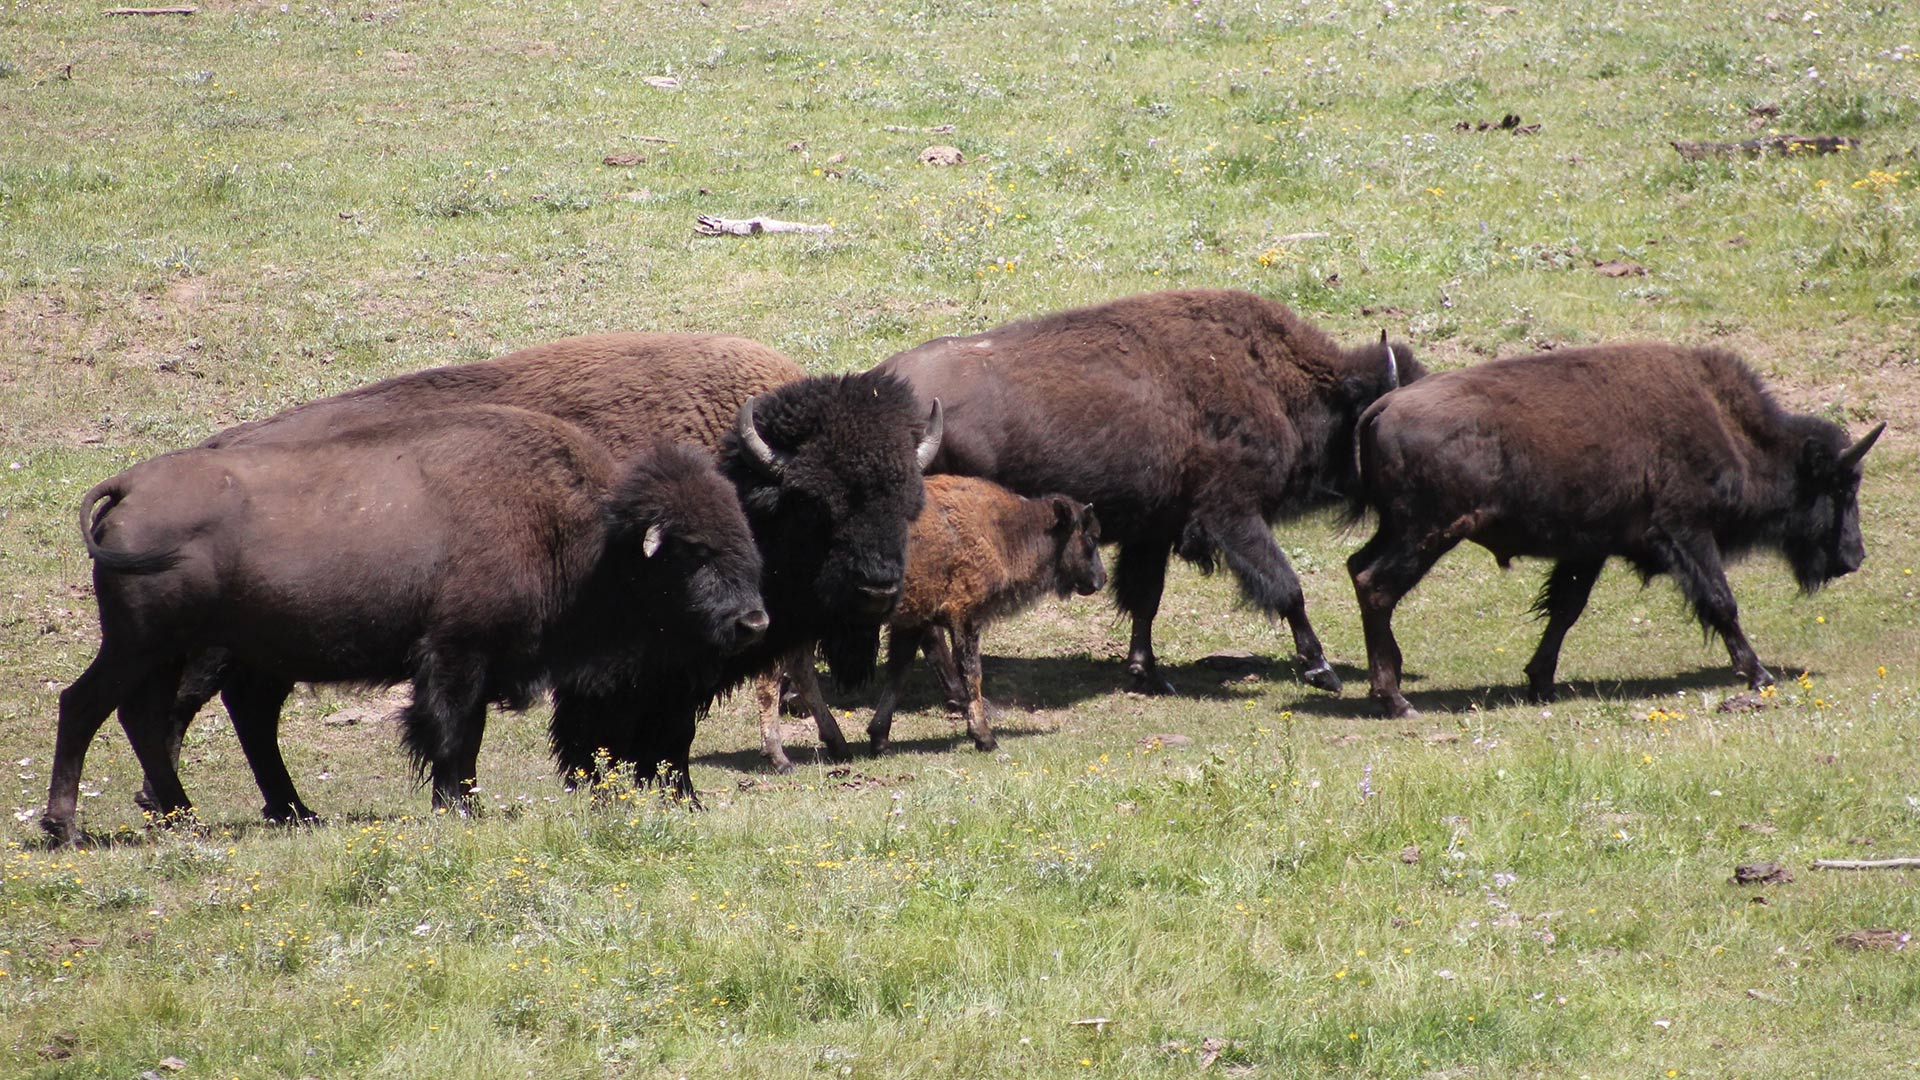 Cronkite News: Plans move forward to reduce bison in Grand Canyon National Park